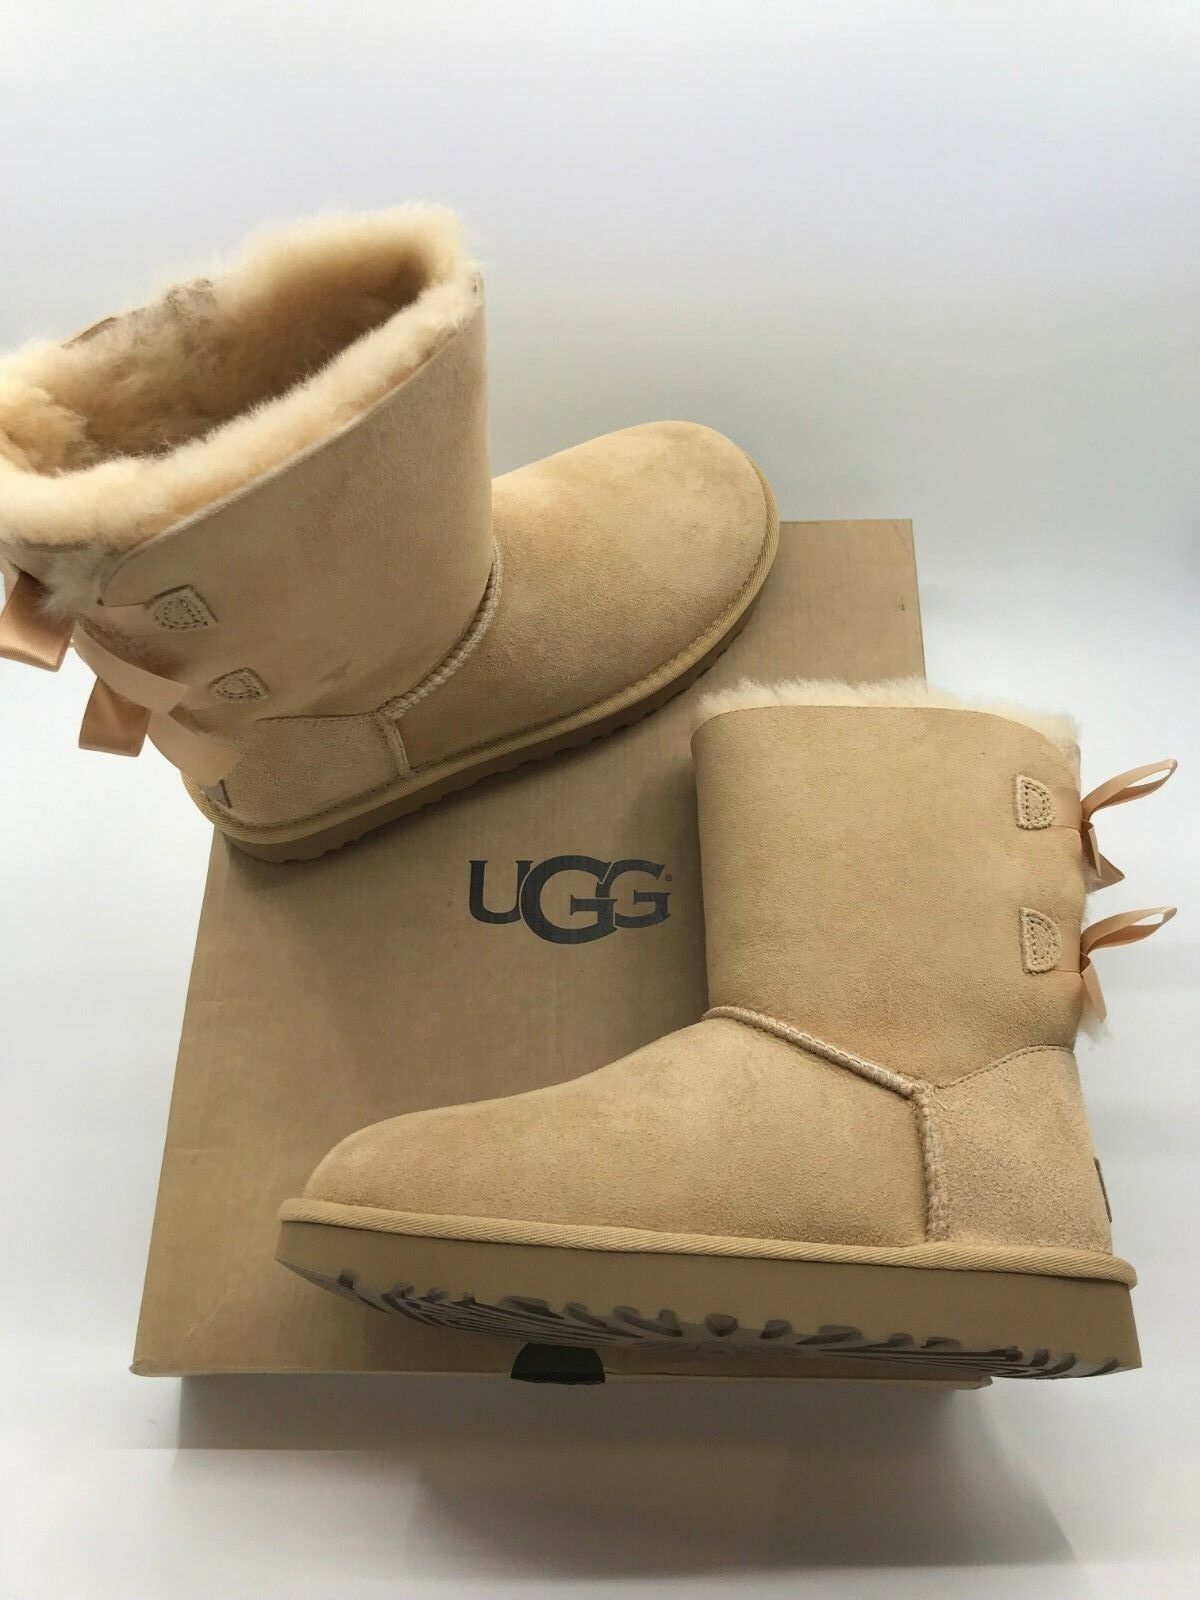 cd97911cd52 UGG Bailey Bow II Womens 1016225-soch Soft Ochre Suede Sheepskin BOOTS Size  6